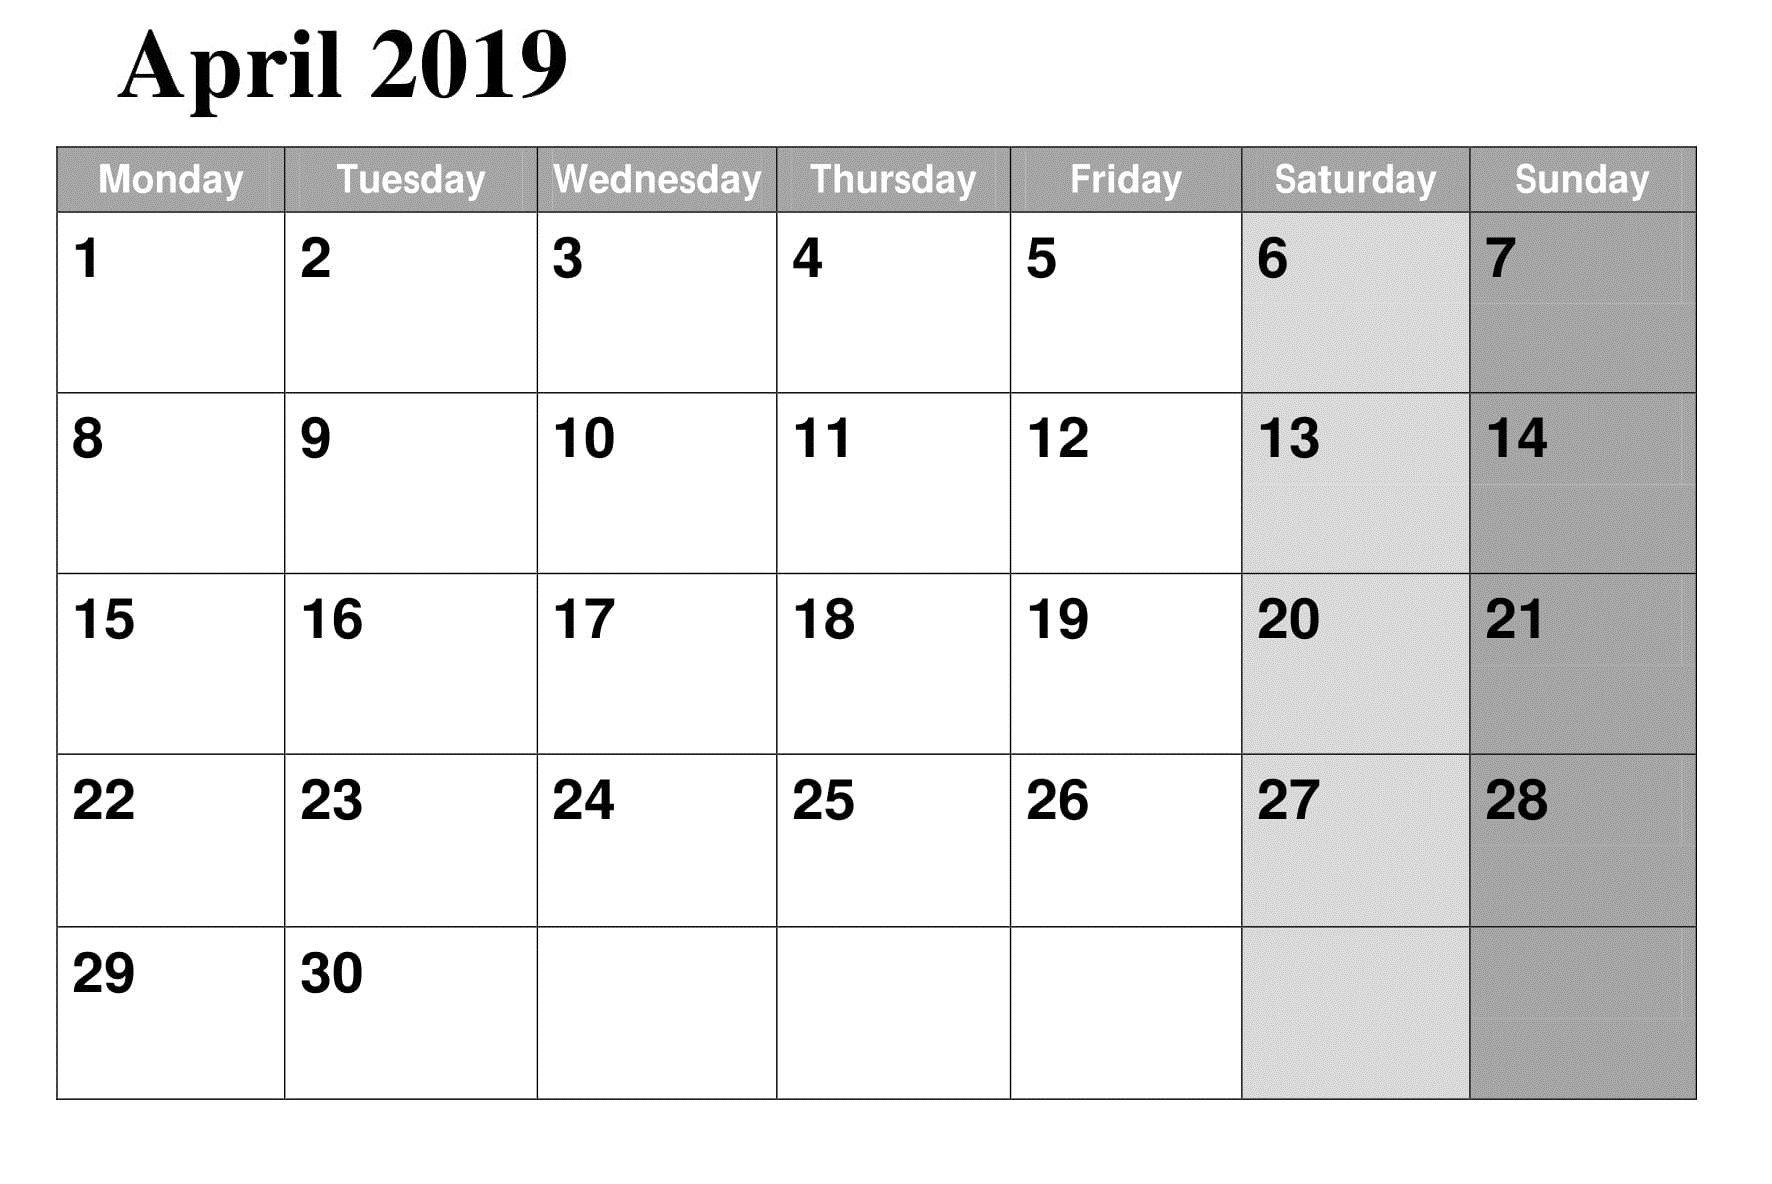 April 2019 Calendar Printable Template Calendar Word 2019 Calendar Calendar Template